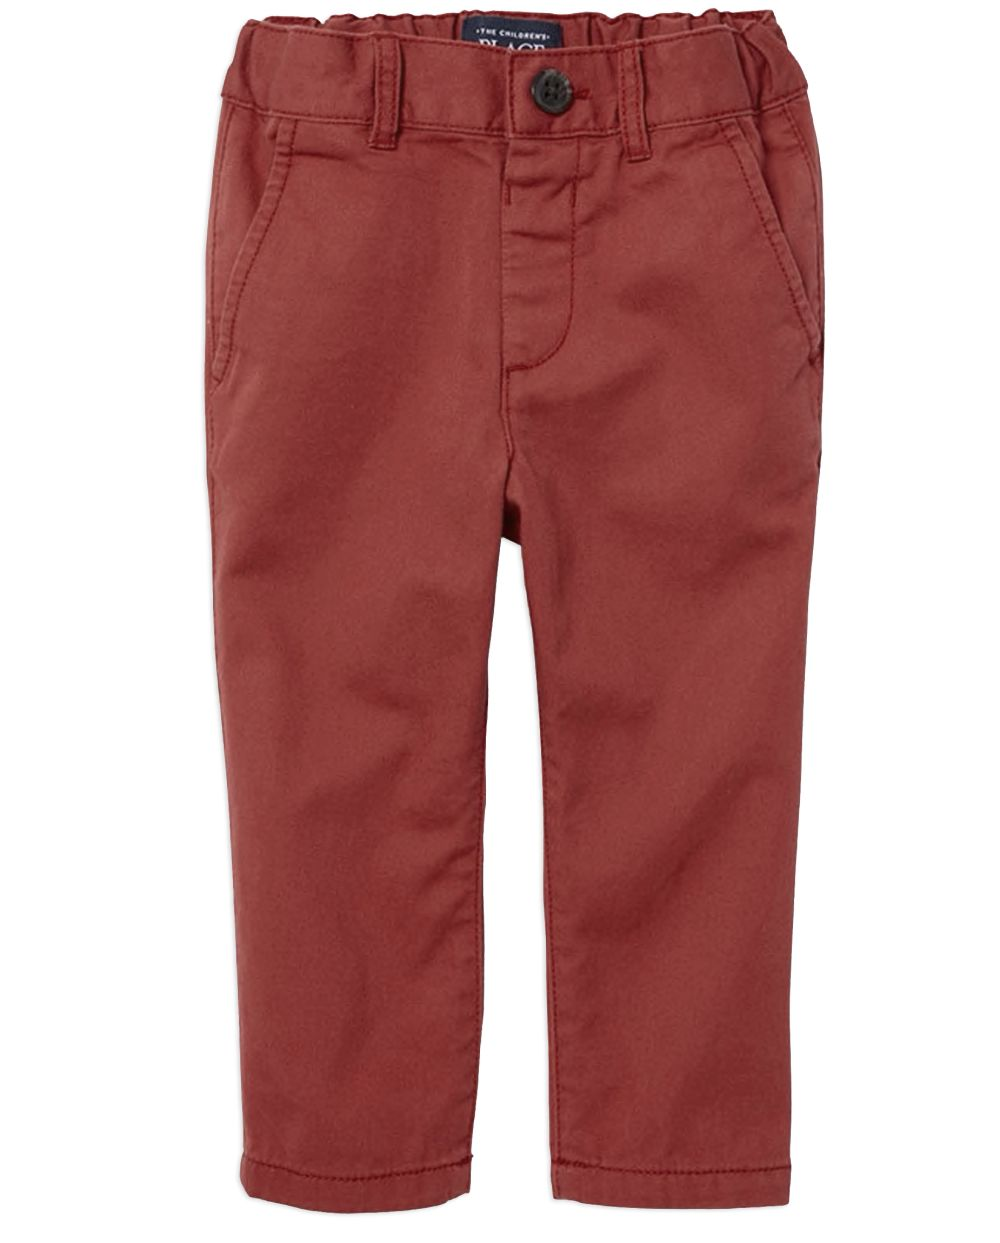 Baby And Toddler Boys Uniform Skinny Chino Pants